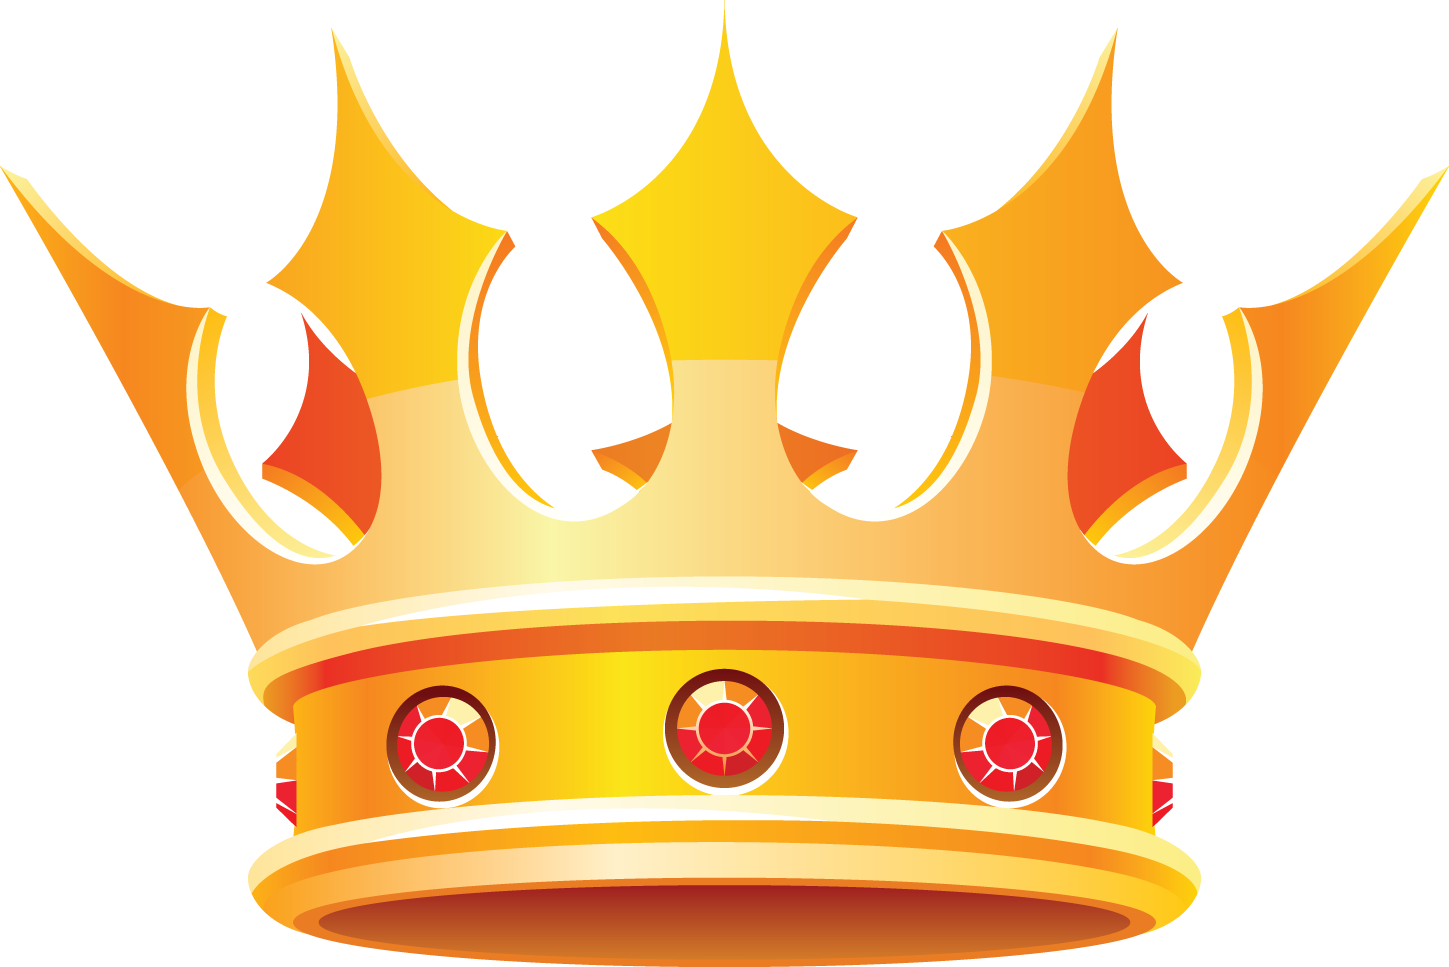 Queen's crown clipart clip art free download Queen Crown Clipart at GetDrawings.com | Free for personal use Queen ... clip art free download